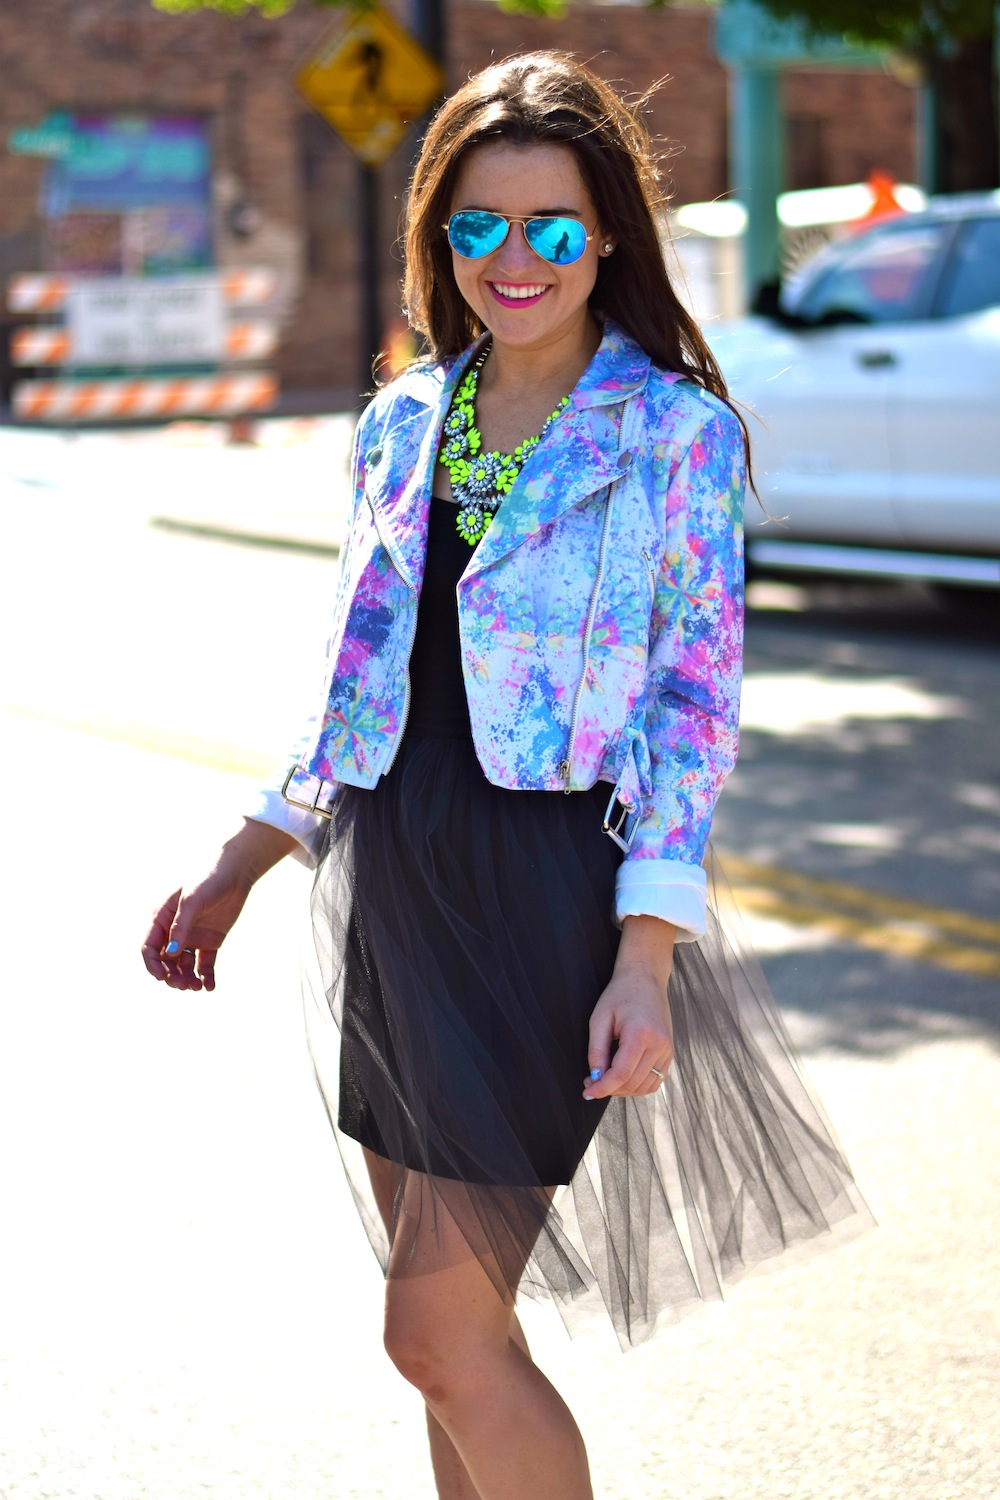 neon jacket with necklace